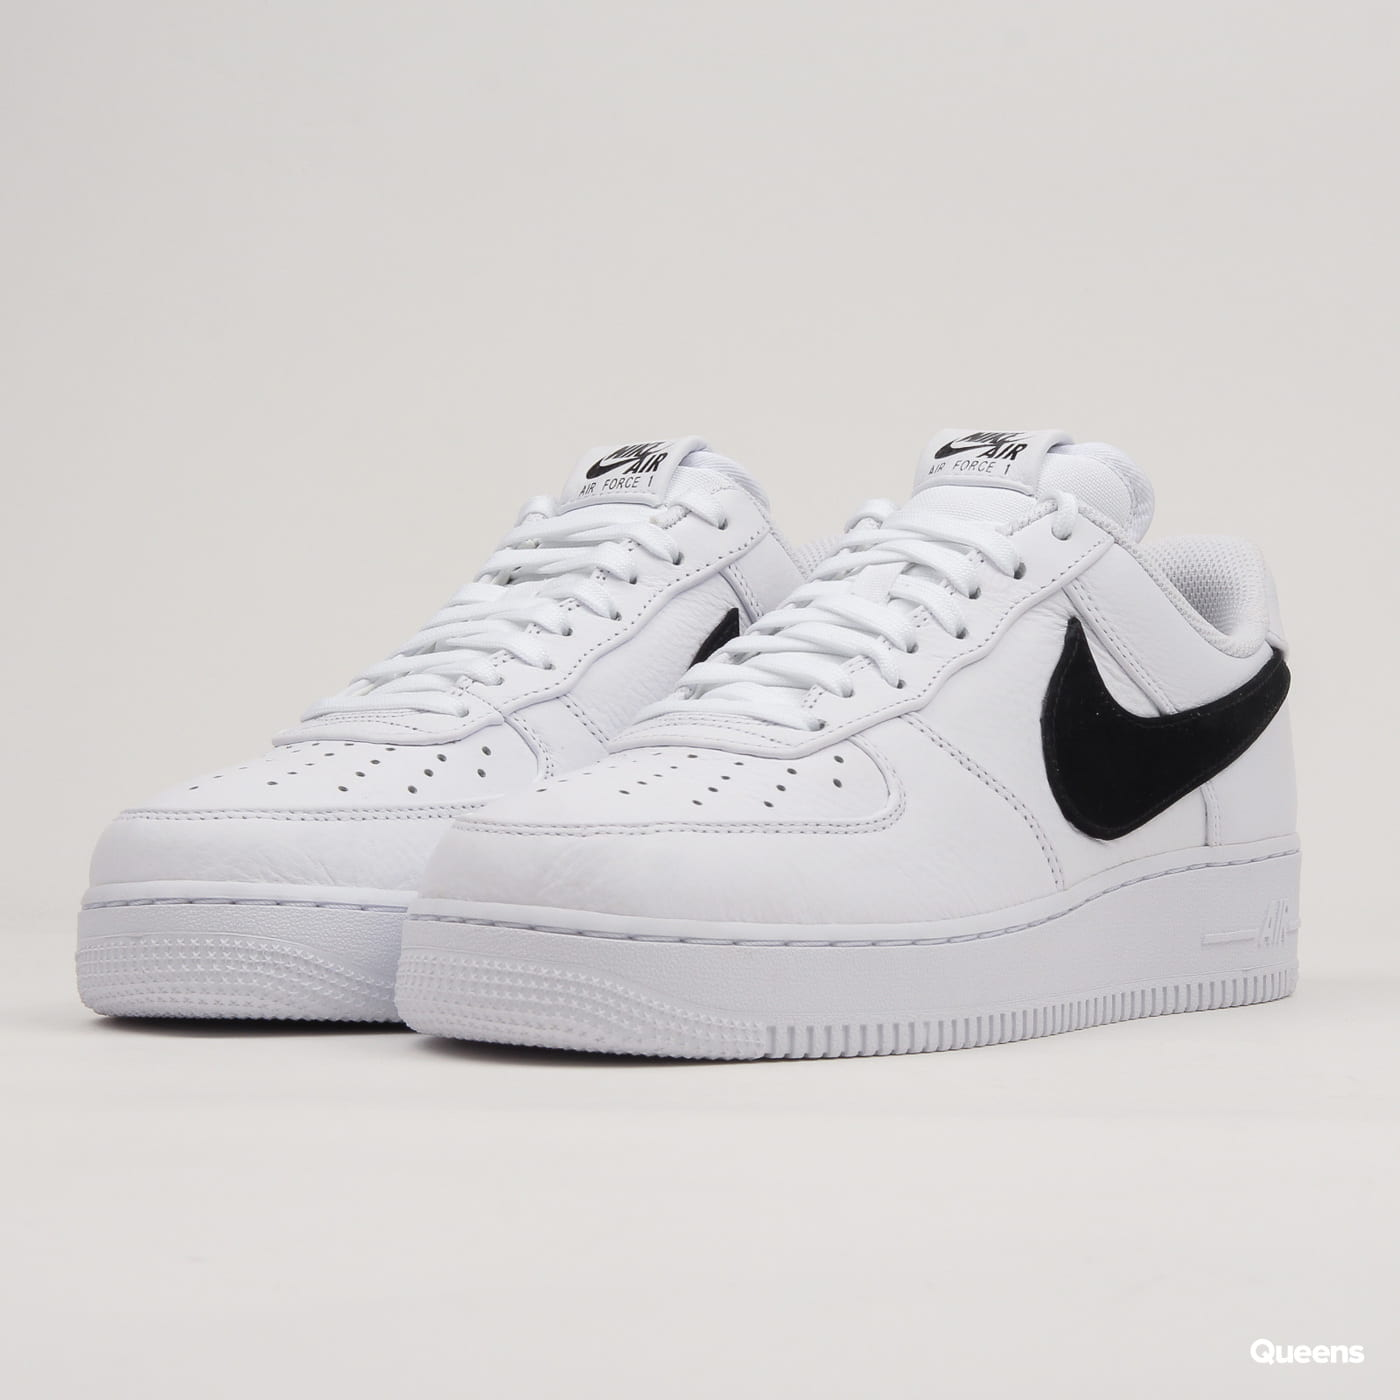 chaussures de sport 8e239 ea9e3 Nike Air Force 1 '07 Premium 2 white / black